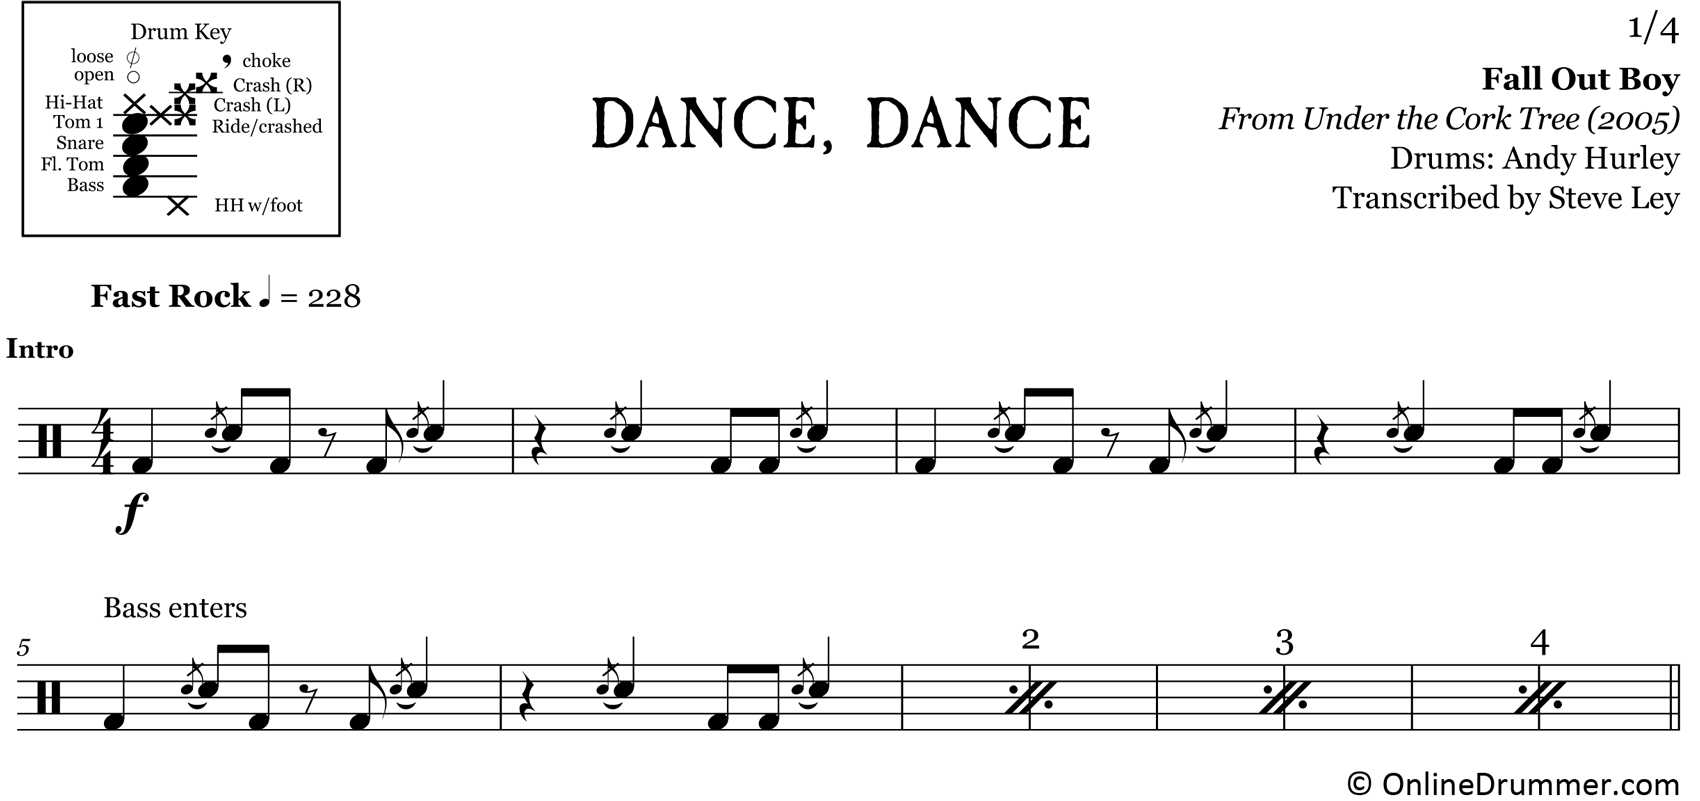 Dance, Dance - Fall Out Boy - Drum Sheet Music